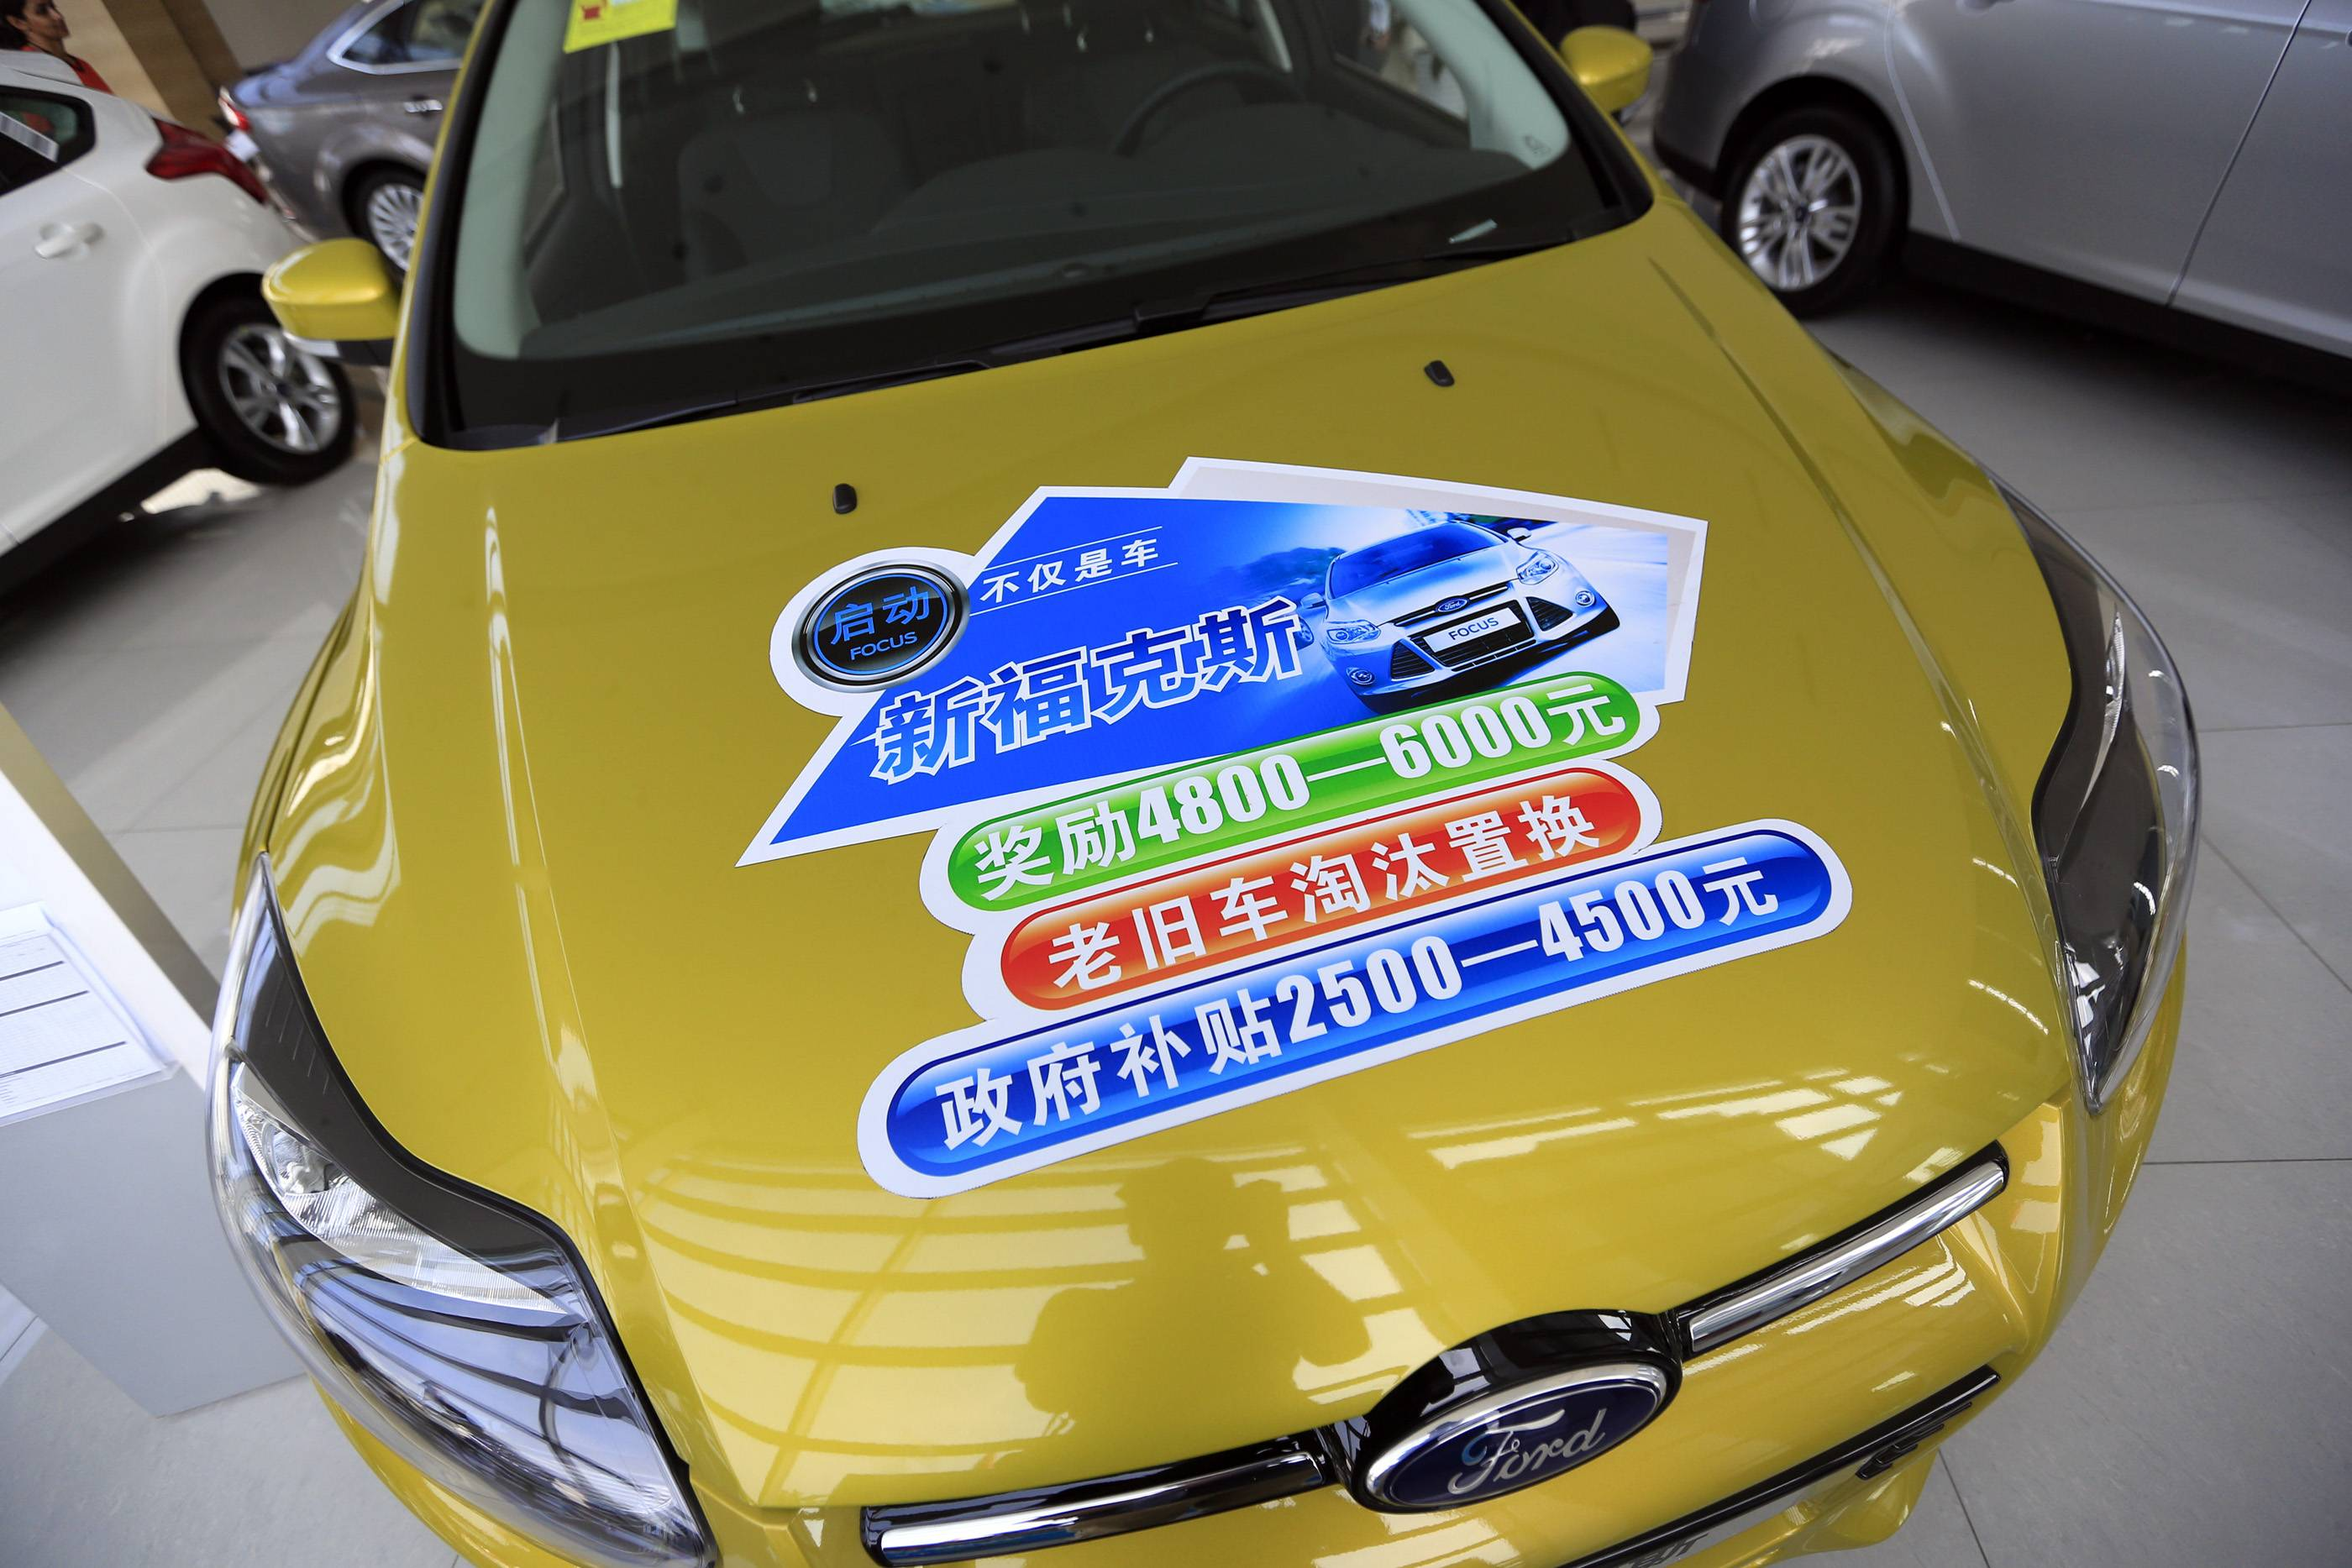 A Ford Motor Co. Focus vehicle is displayed at a dealership in Beijing, China.